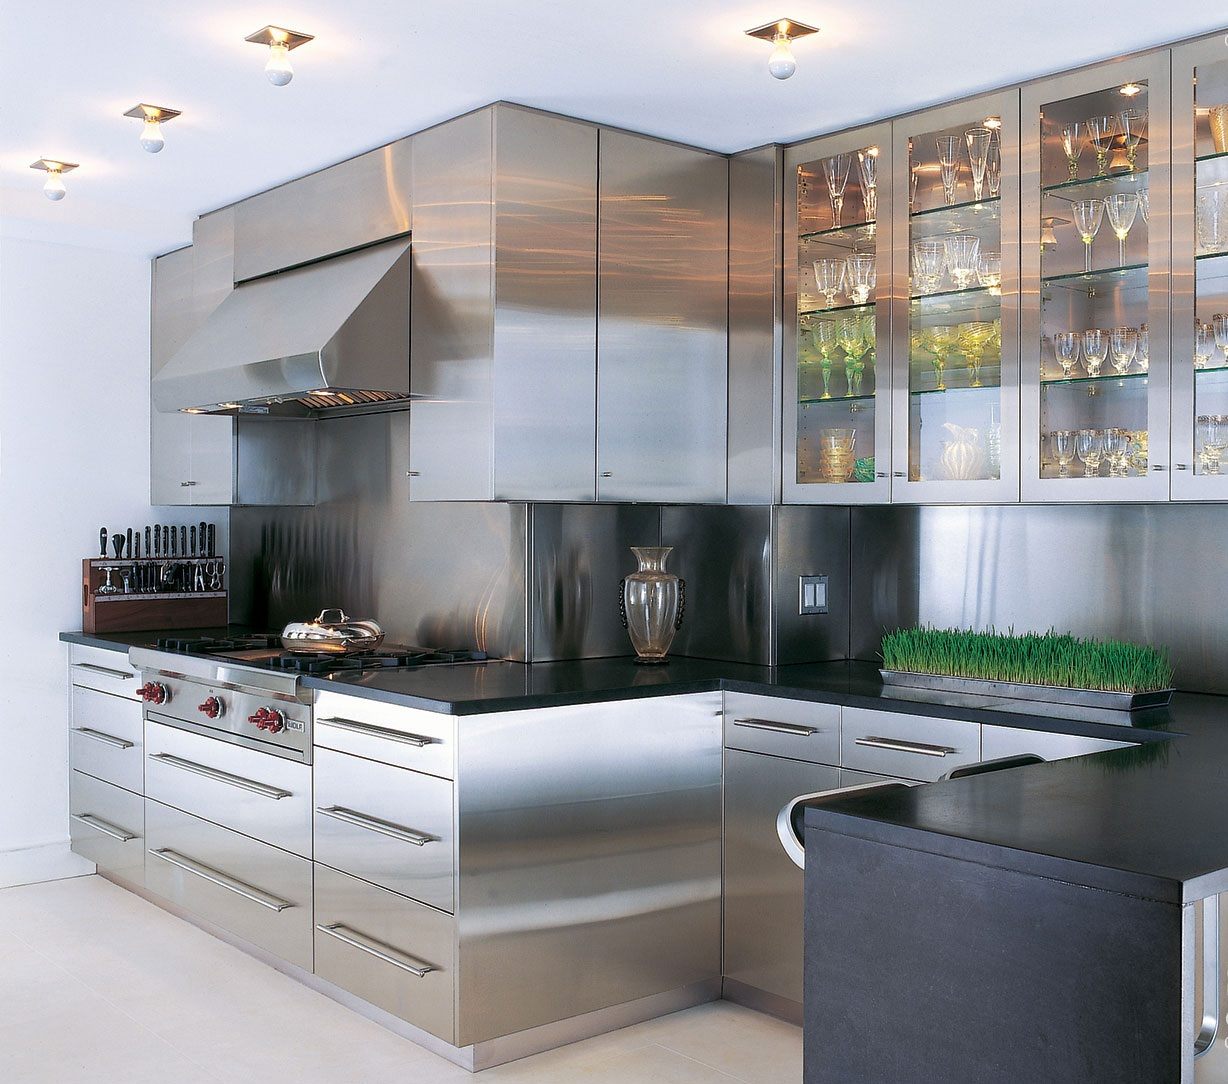 Sale Kitchen Cabinets Stainless Steel Kitchen Cabinets Steelkitchen